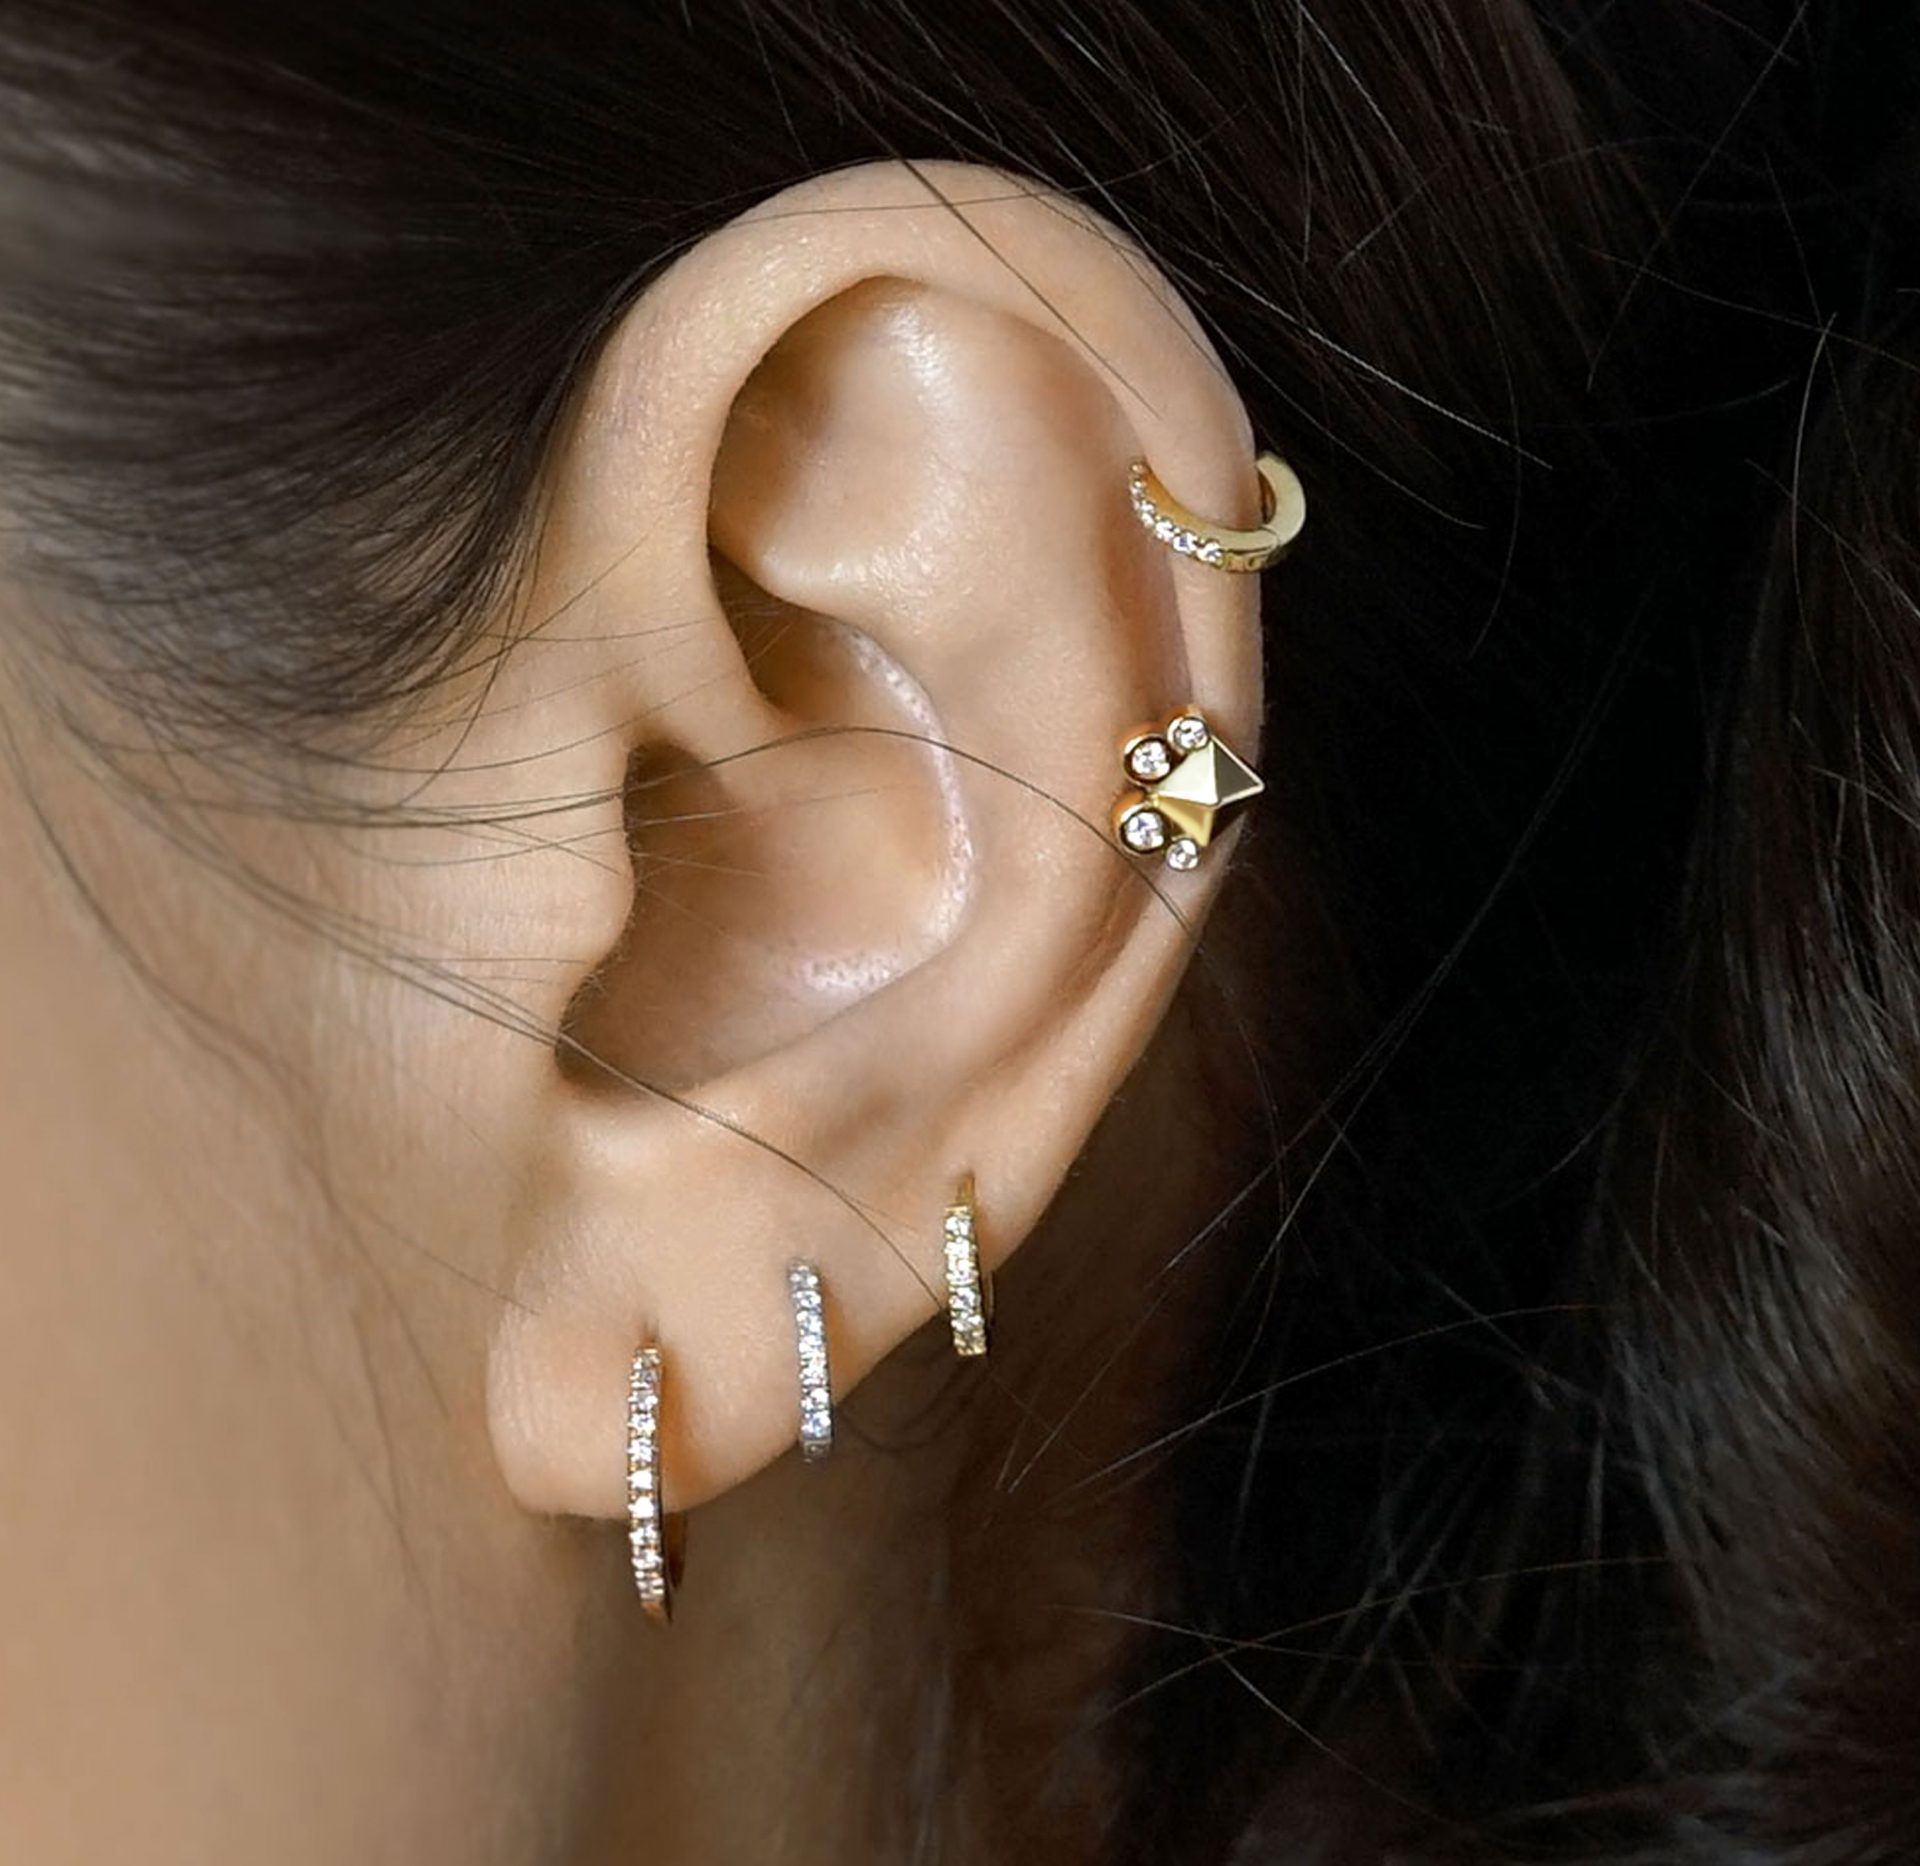 cartilage-helix-18k-solid-gold-earring-zodiac-aries-lena-cohen-london